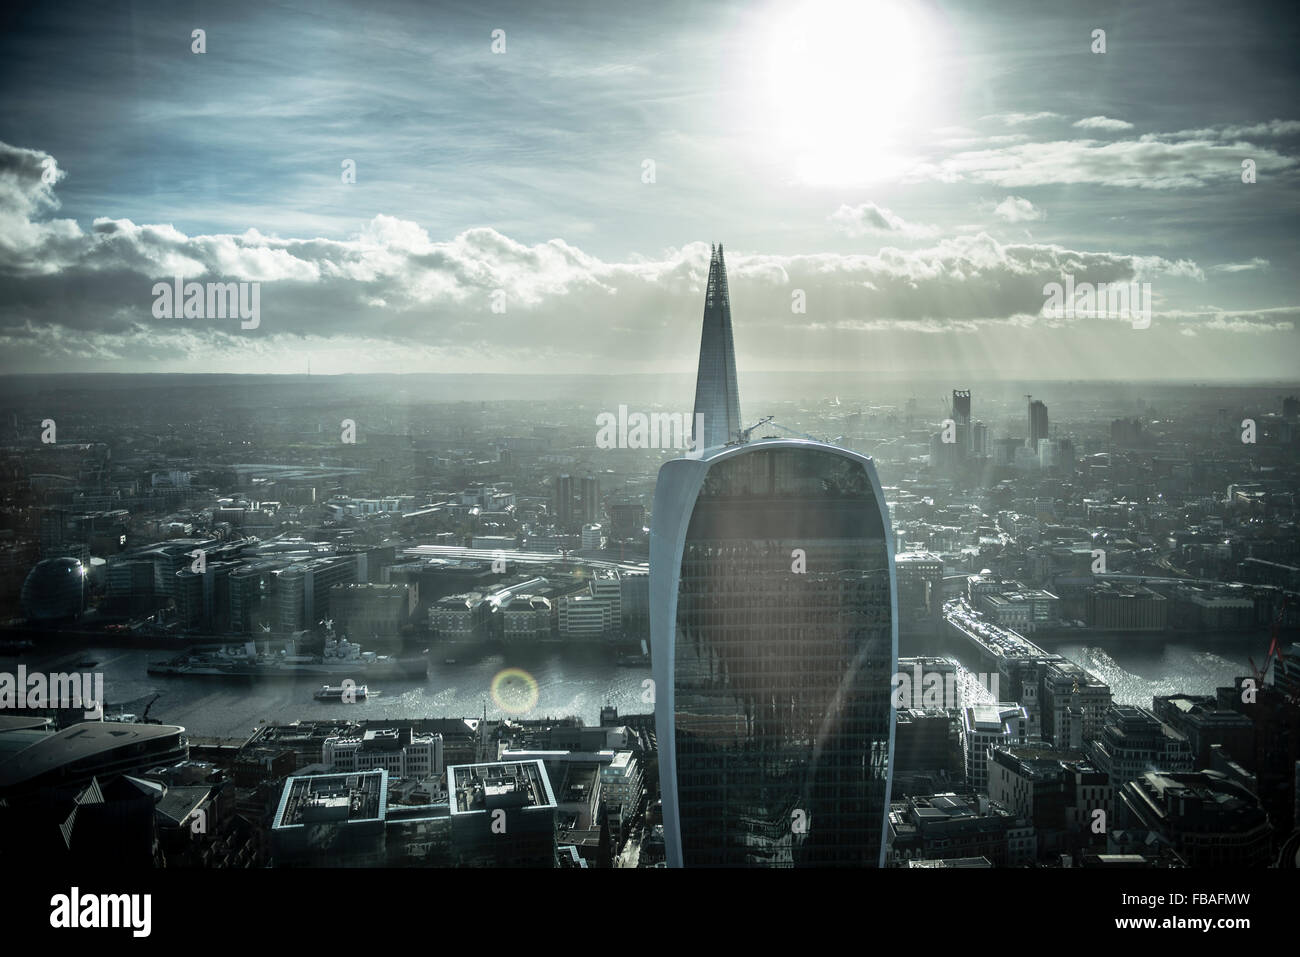 View across London cityscape, Walkie Talkie and the Shard - Stock Image